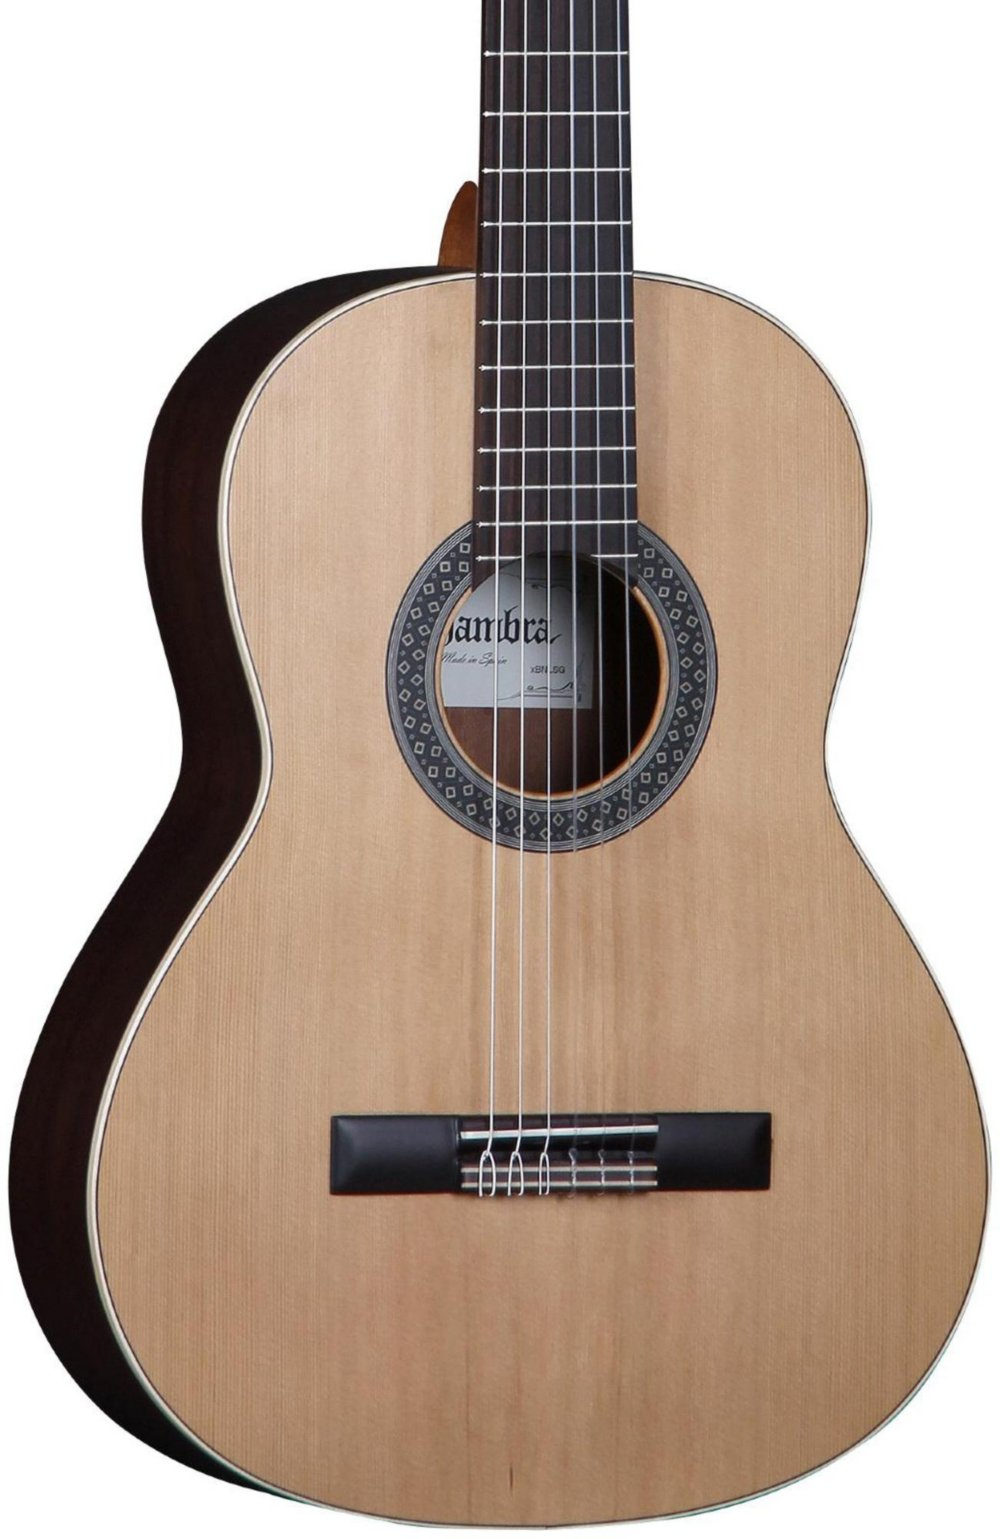 Alhambra 6 String 1OP-Cadete-US Classical Student Guitar, Right Handed, Solid Red Cedar